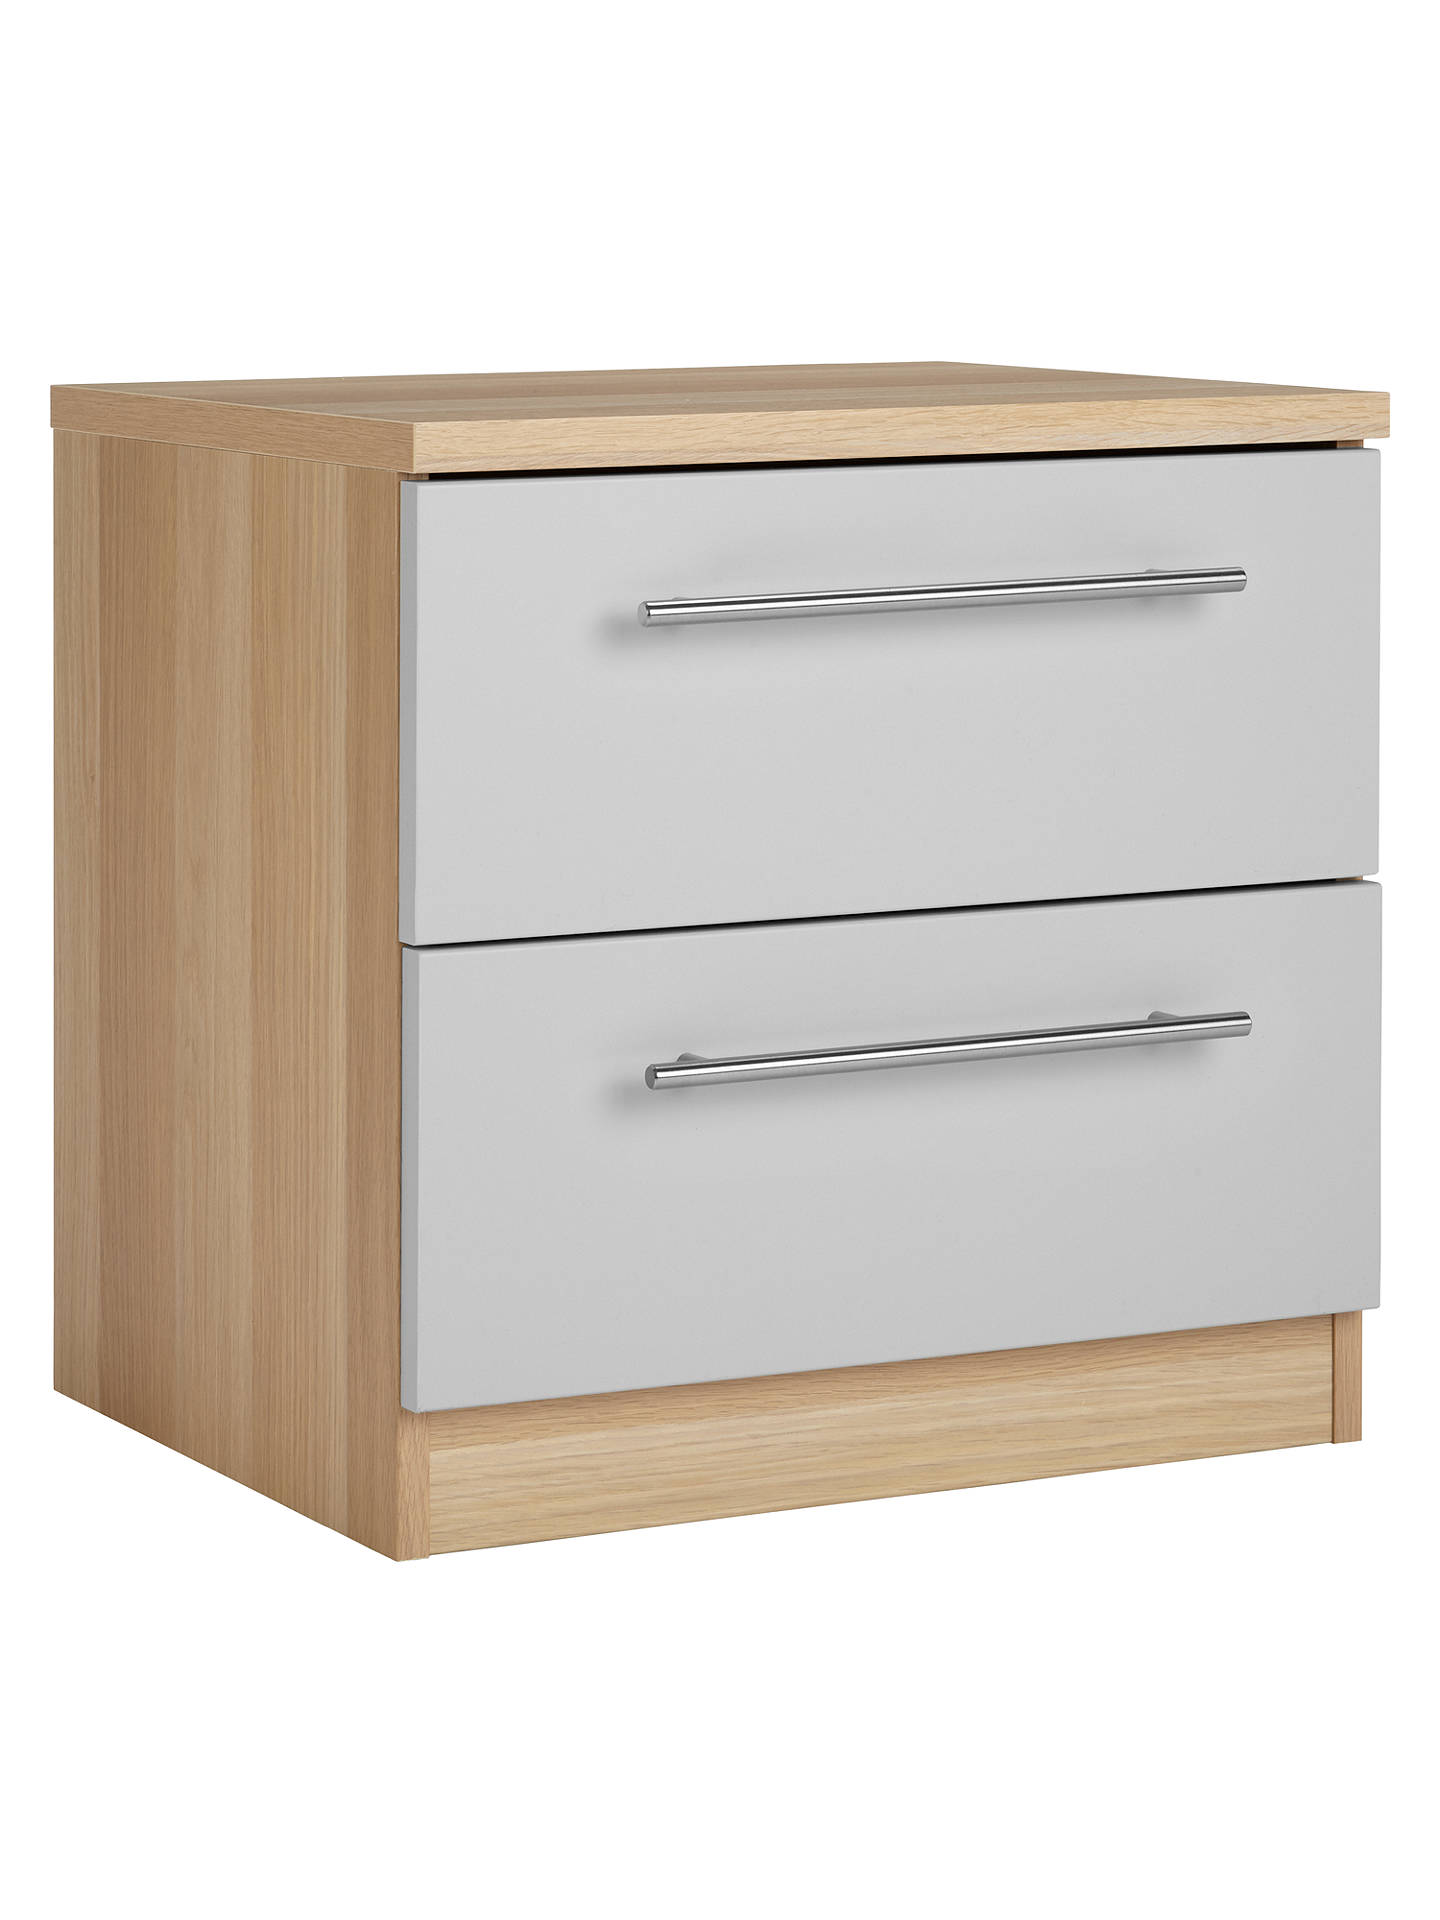 BuyHouse by John Lewis Mix it T-Bar Handle Bedside Chest, House Smoke/Natural Oak Online at johnlewis.com